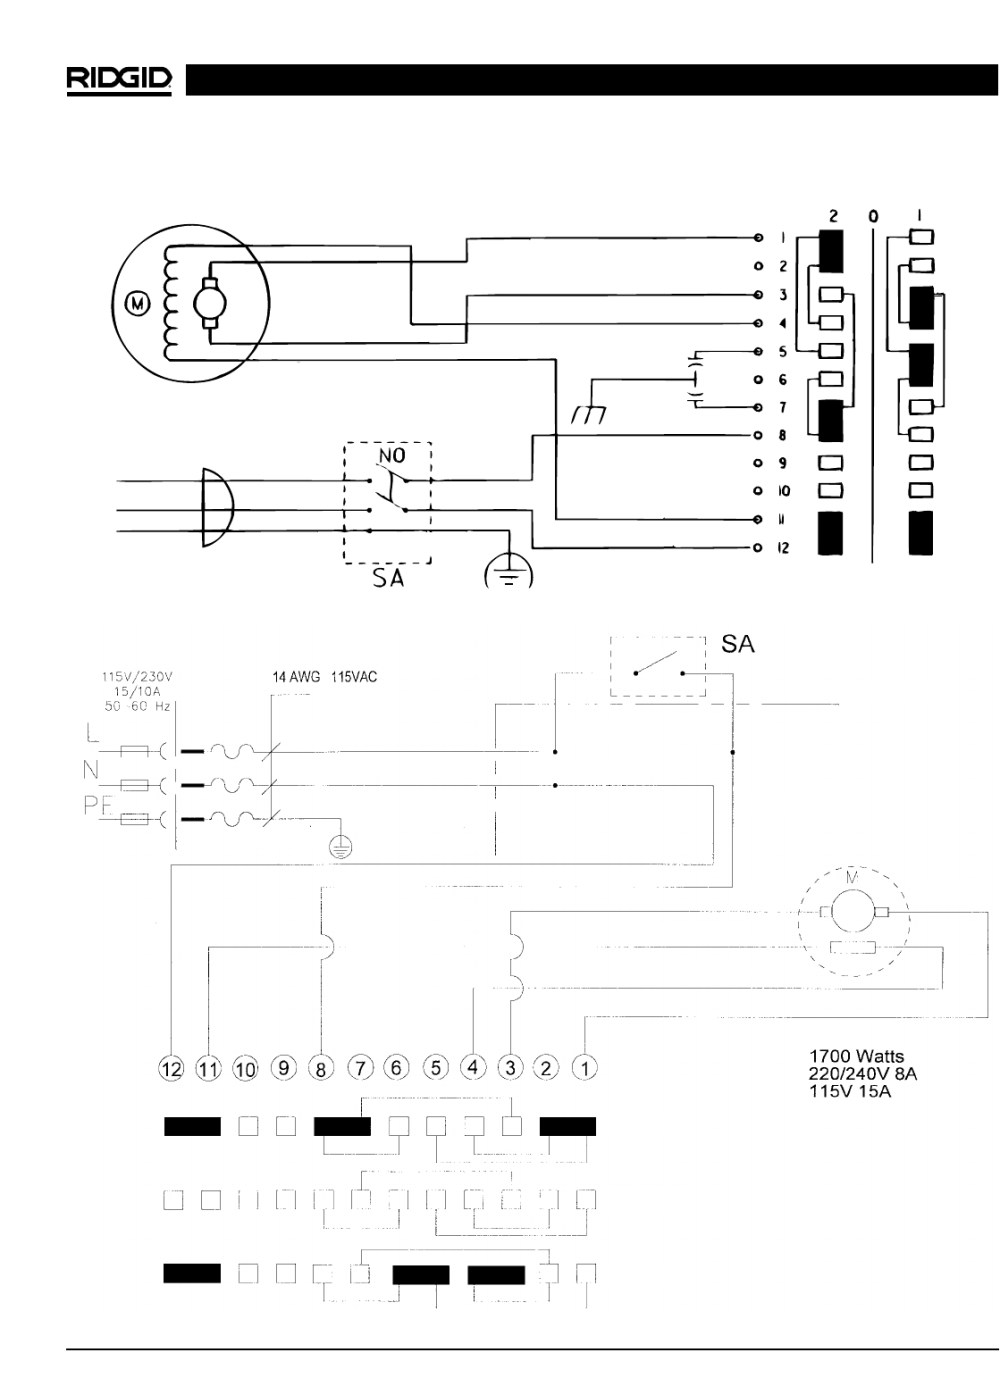 medium resolution of ridgid 4 wire 220v plug wiring diagram circuit diagram images